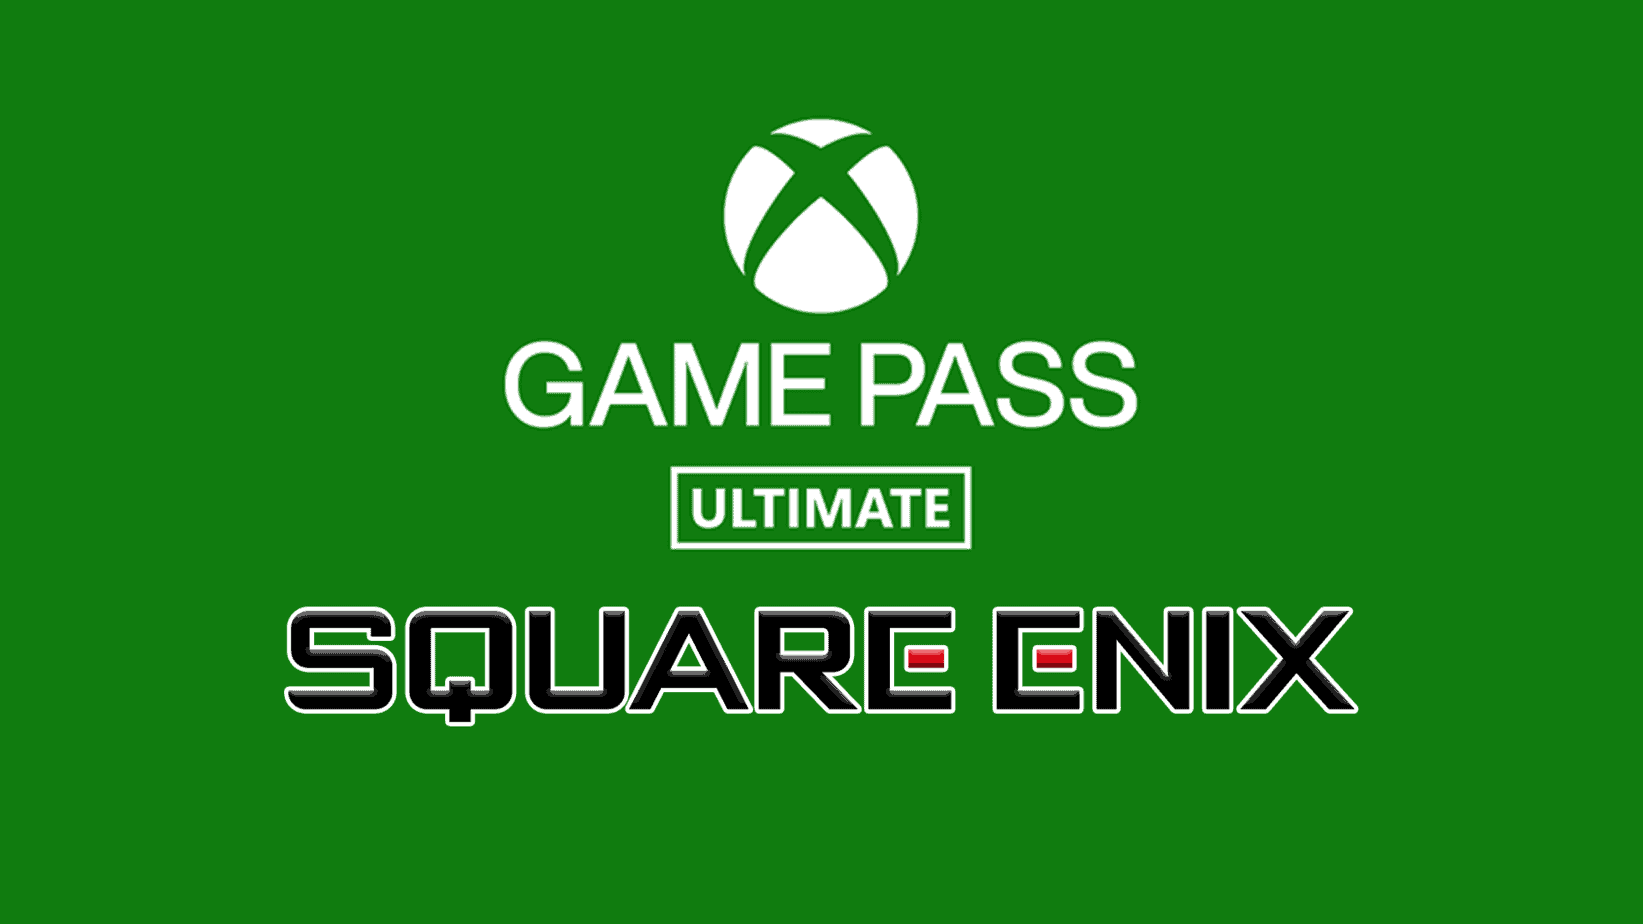 6 Square Enix Games Coming to Xbox Game Pass